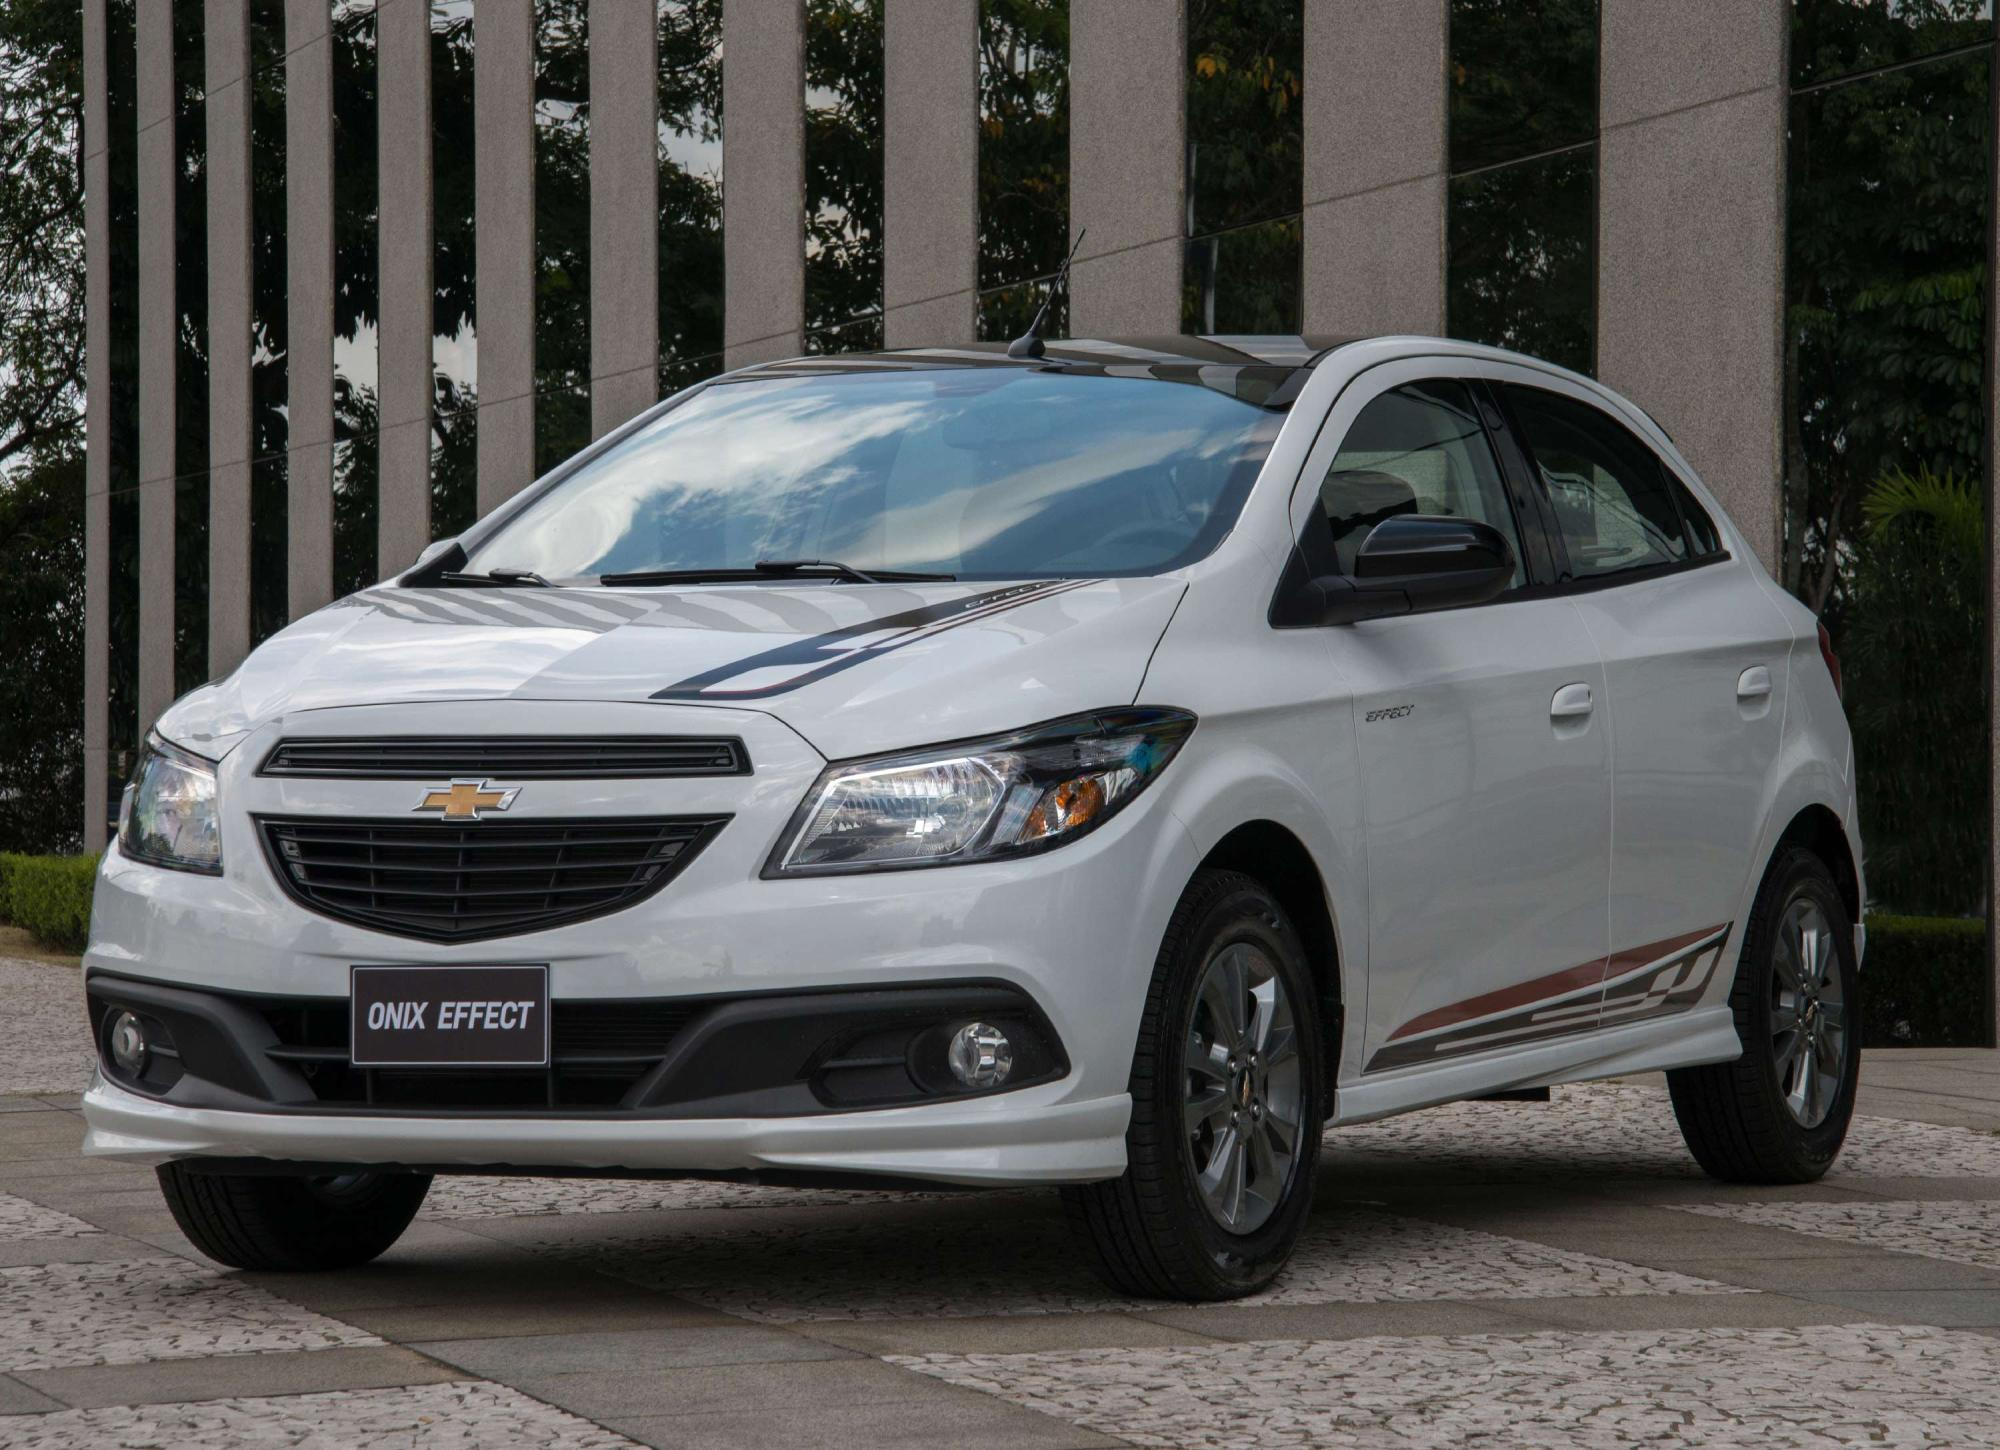 hight resolution of chevrolet onix effect 1 4 2014 2015 15